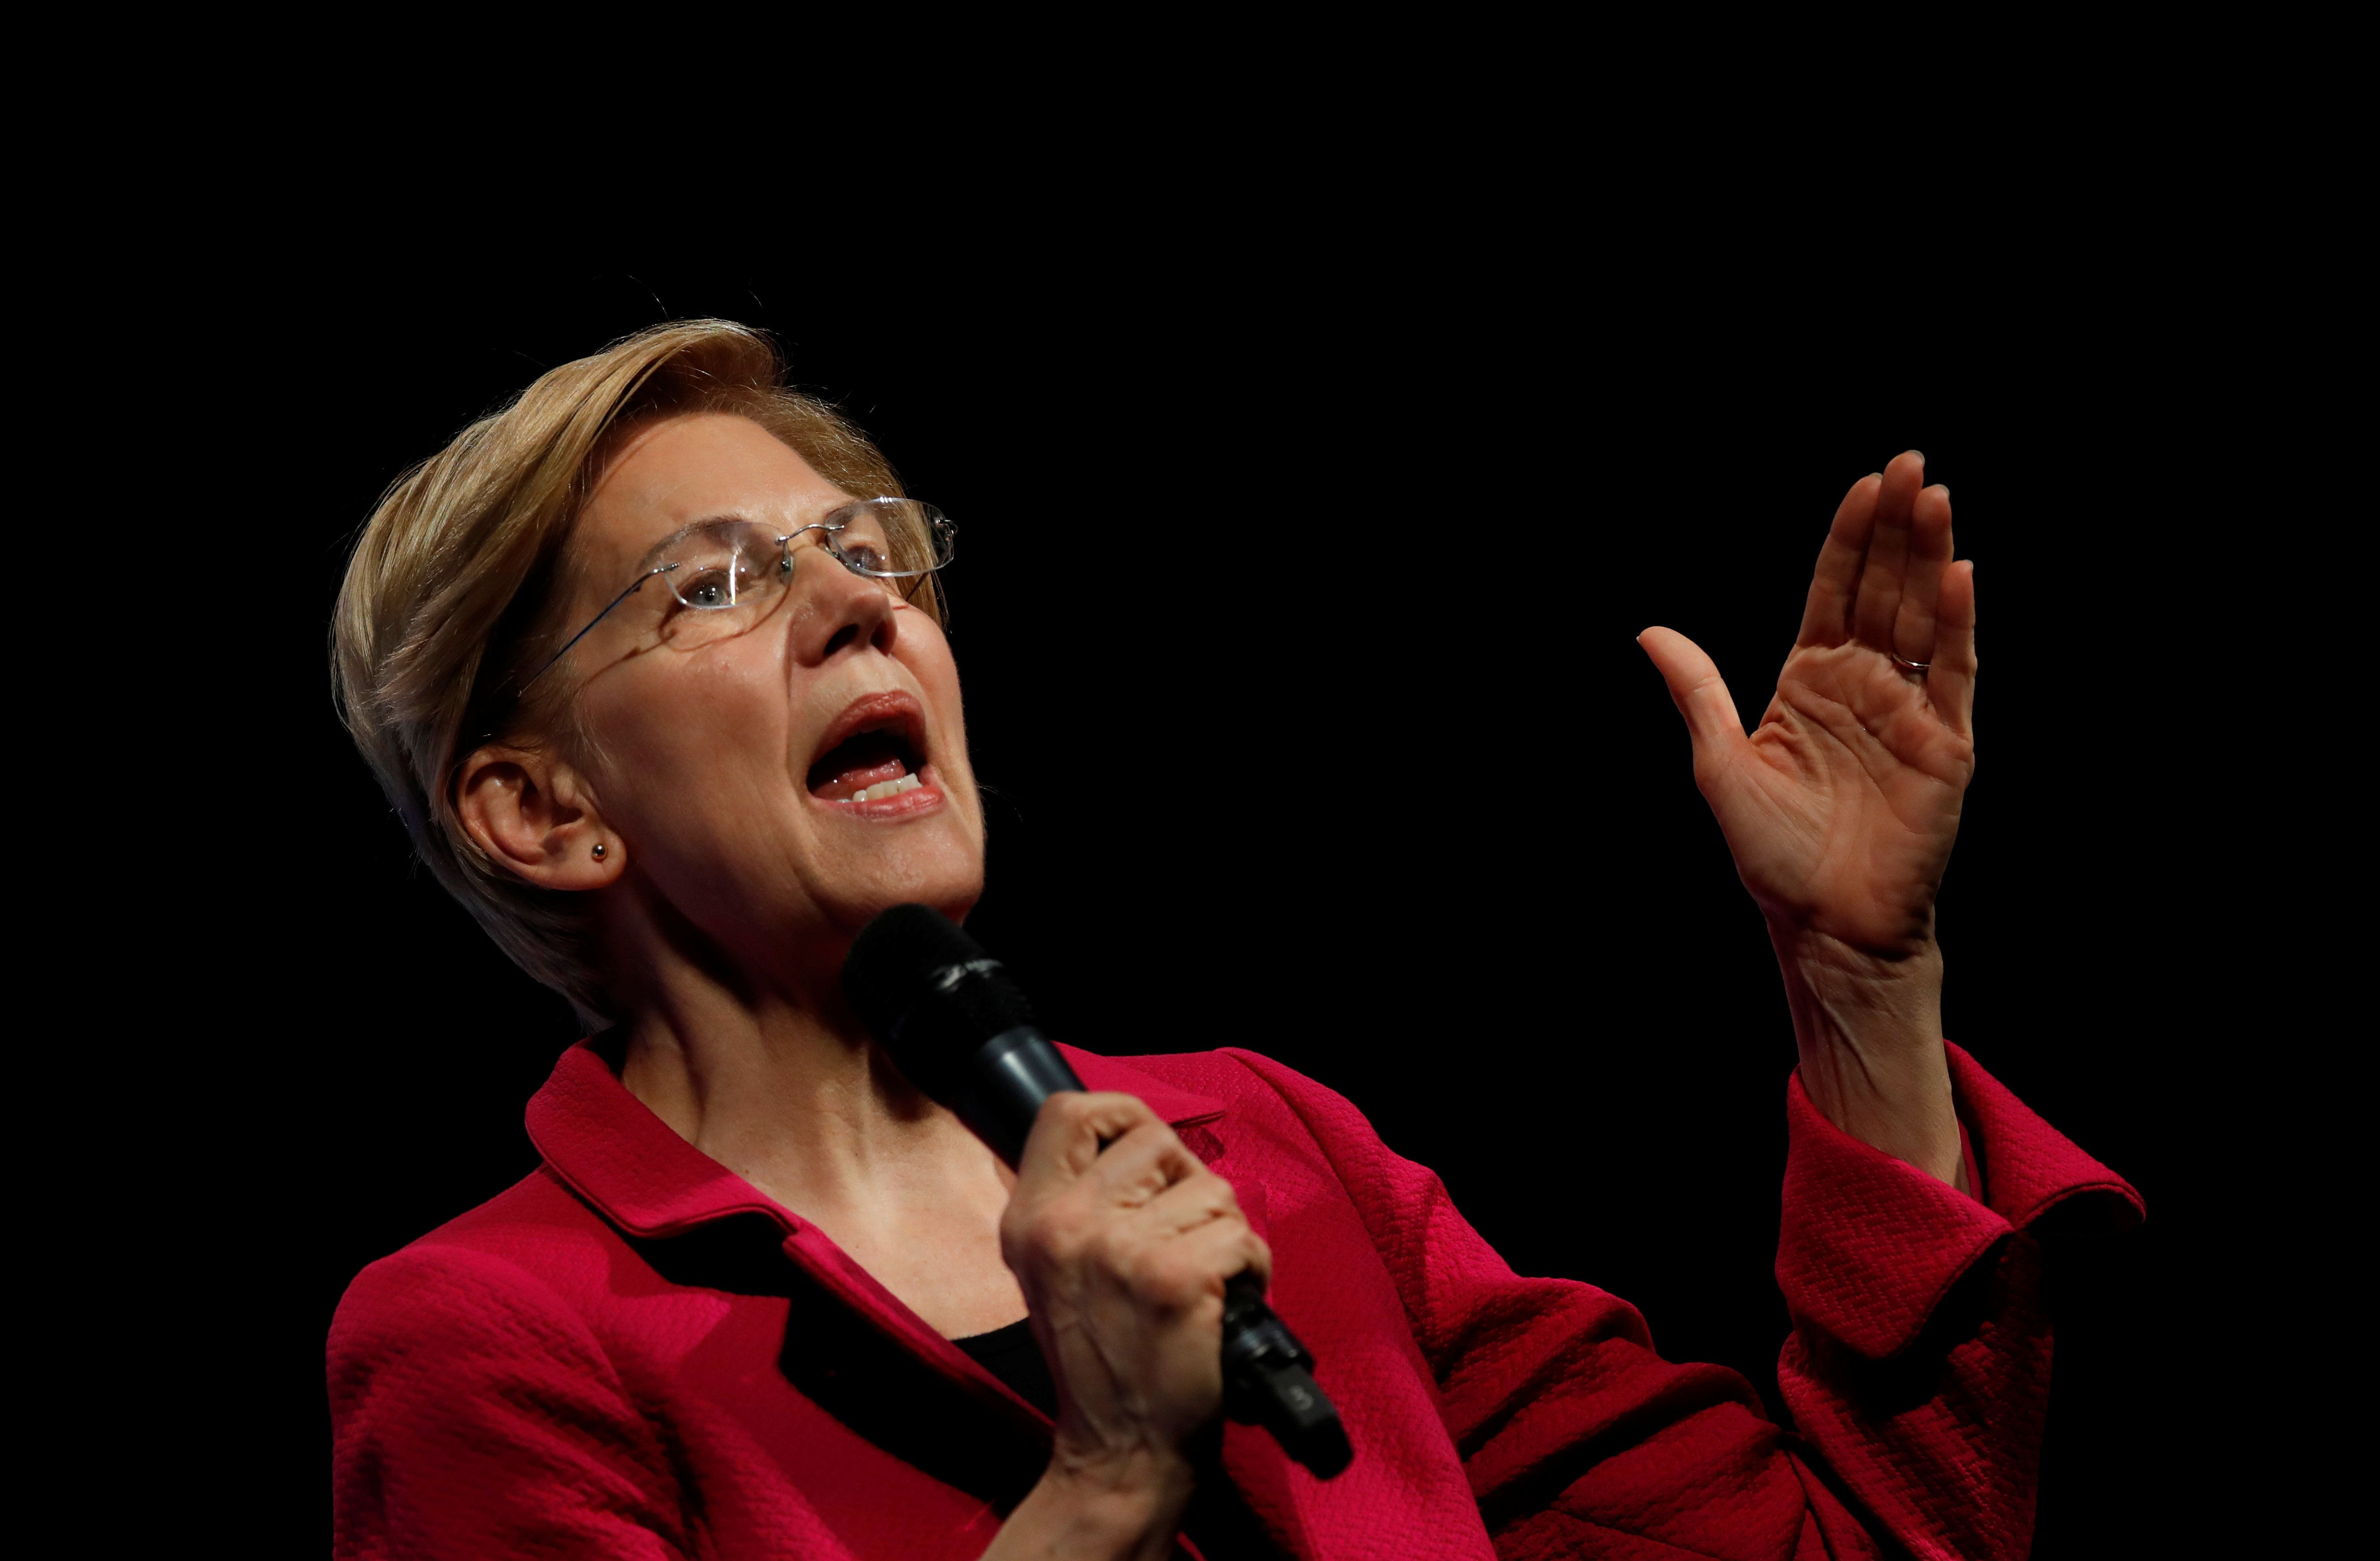 U.S. 2020 Democratic presidential candidate and Senator Elizabeth Warren participates in a moderated discussion at the We the People Summit in Washington, U.S., April 1, 2019. REUTERS/Carlos Barria